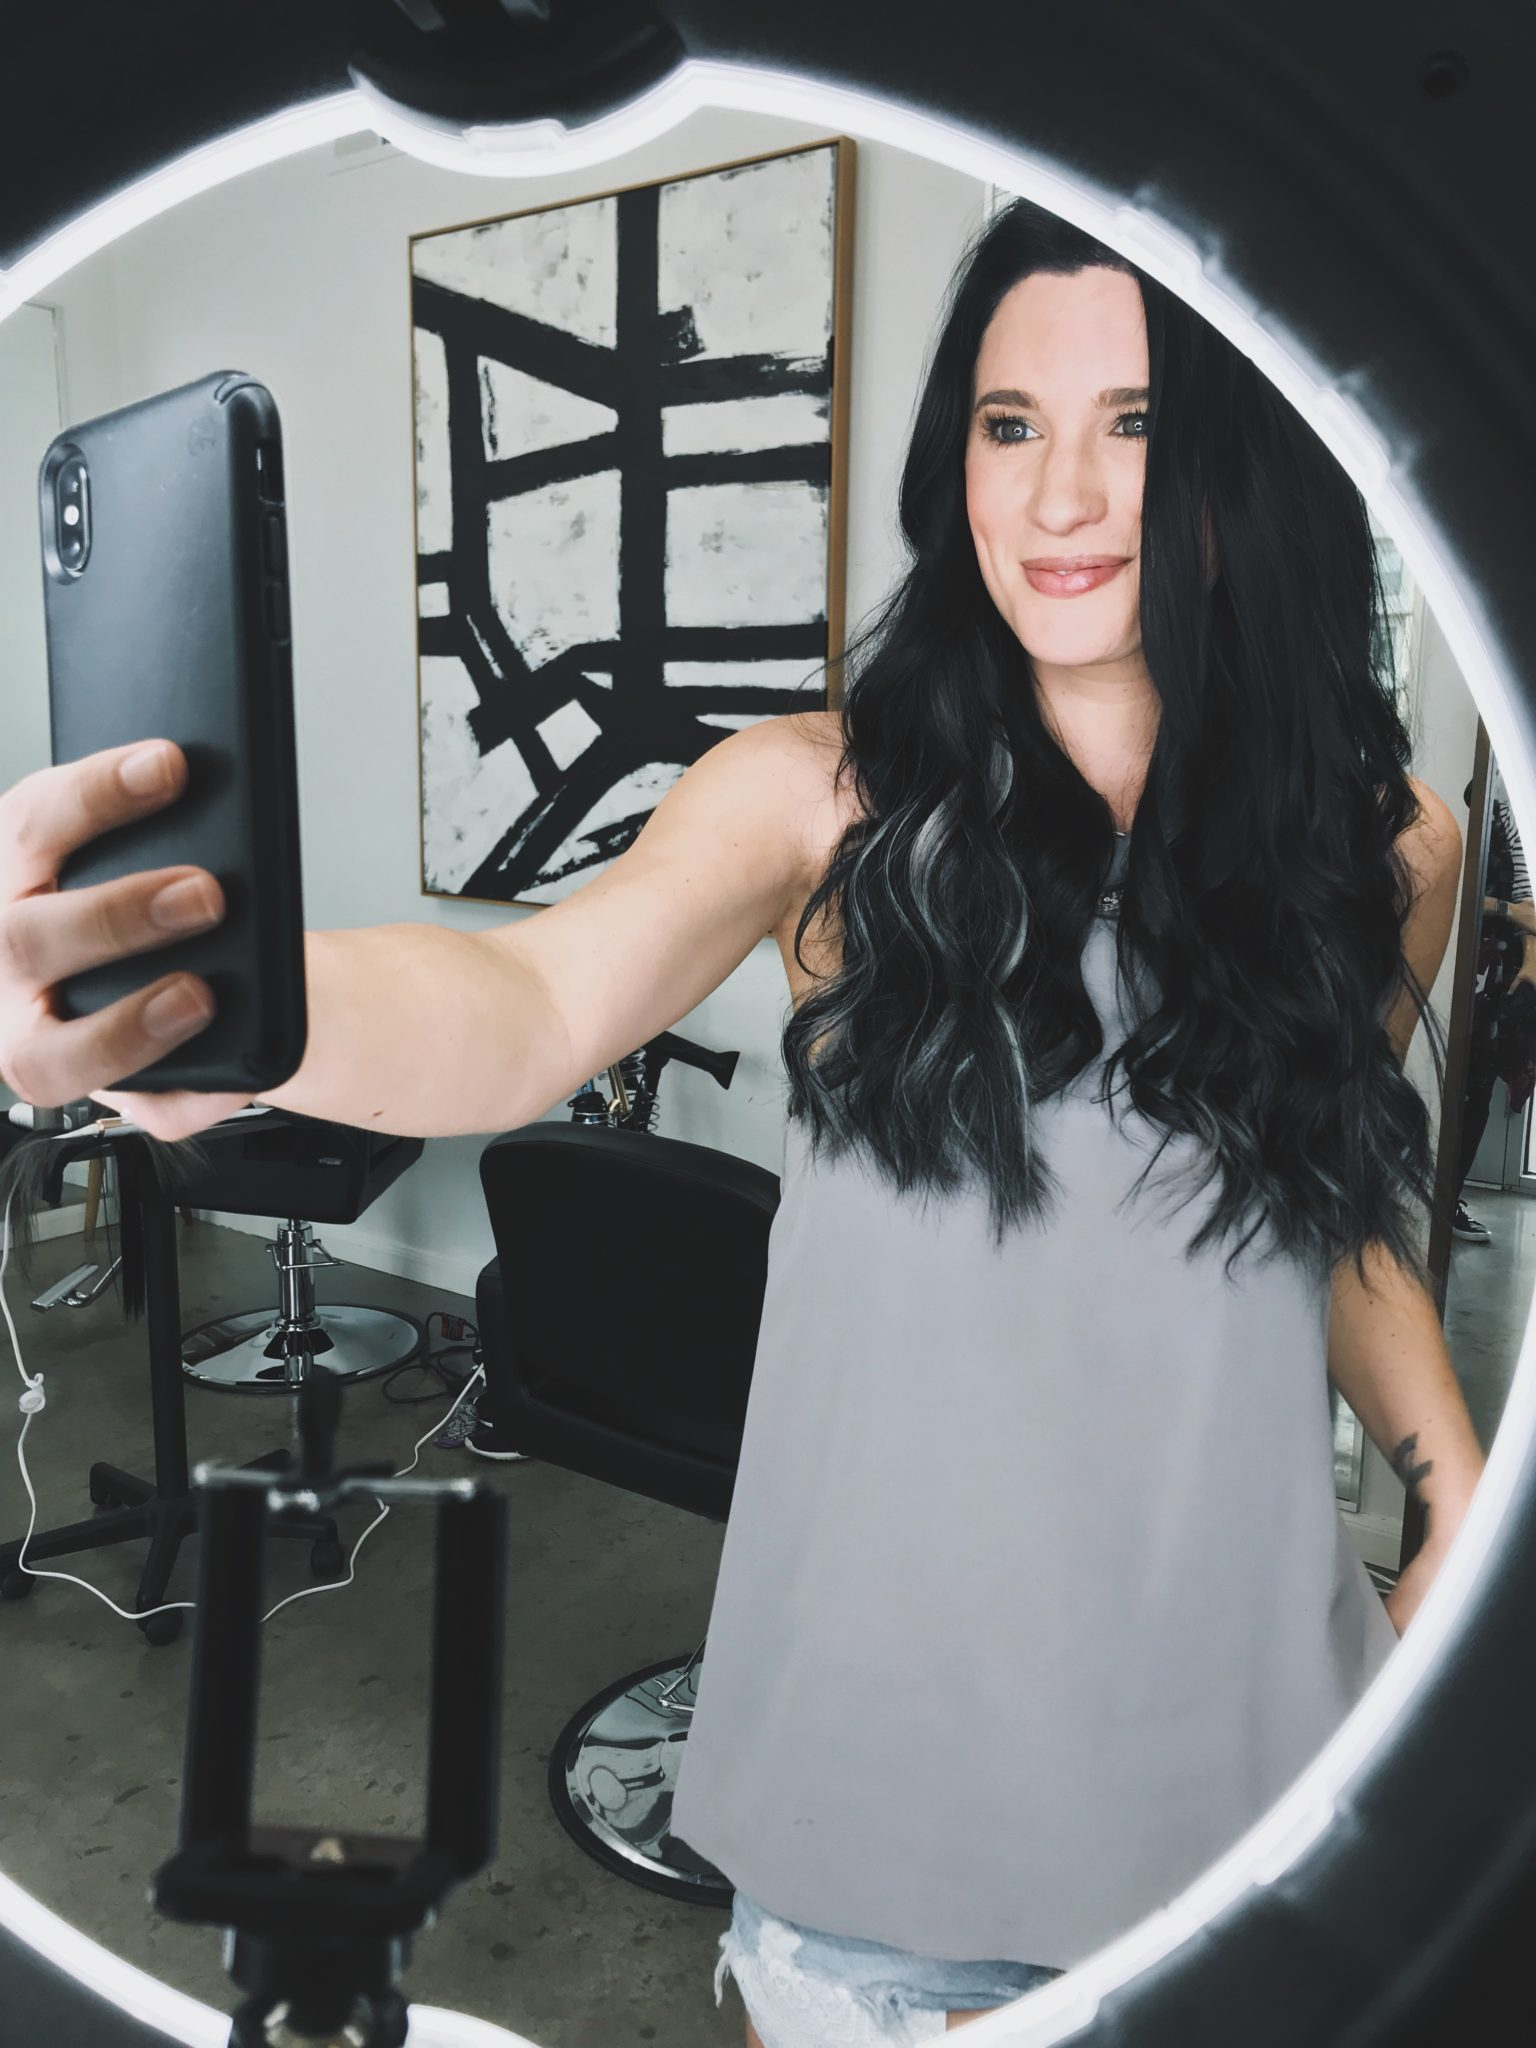 DTKAustin shares how to achieve different types of curls and waves with the T3 Convertible Interchangeable Curling Iron. - T3 Convertible Interchangeable Curling Wand Tutorial by popular Austin style blogger Dressed to Kill